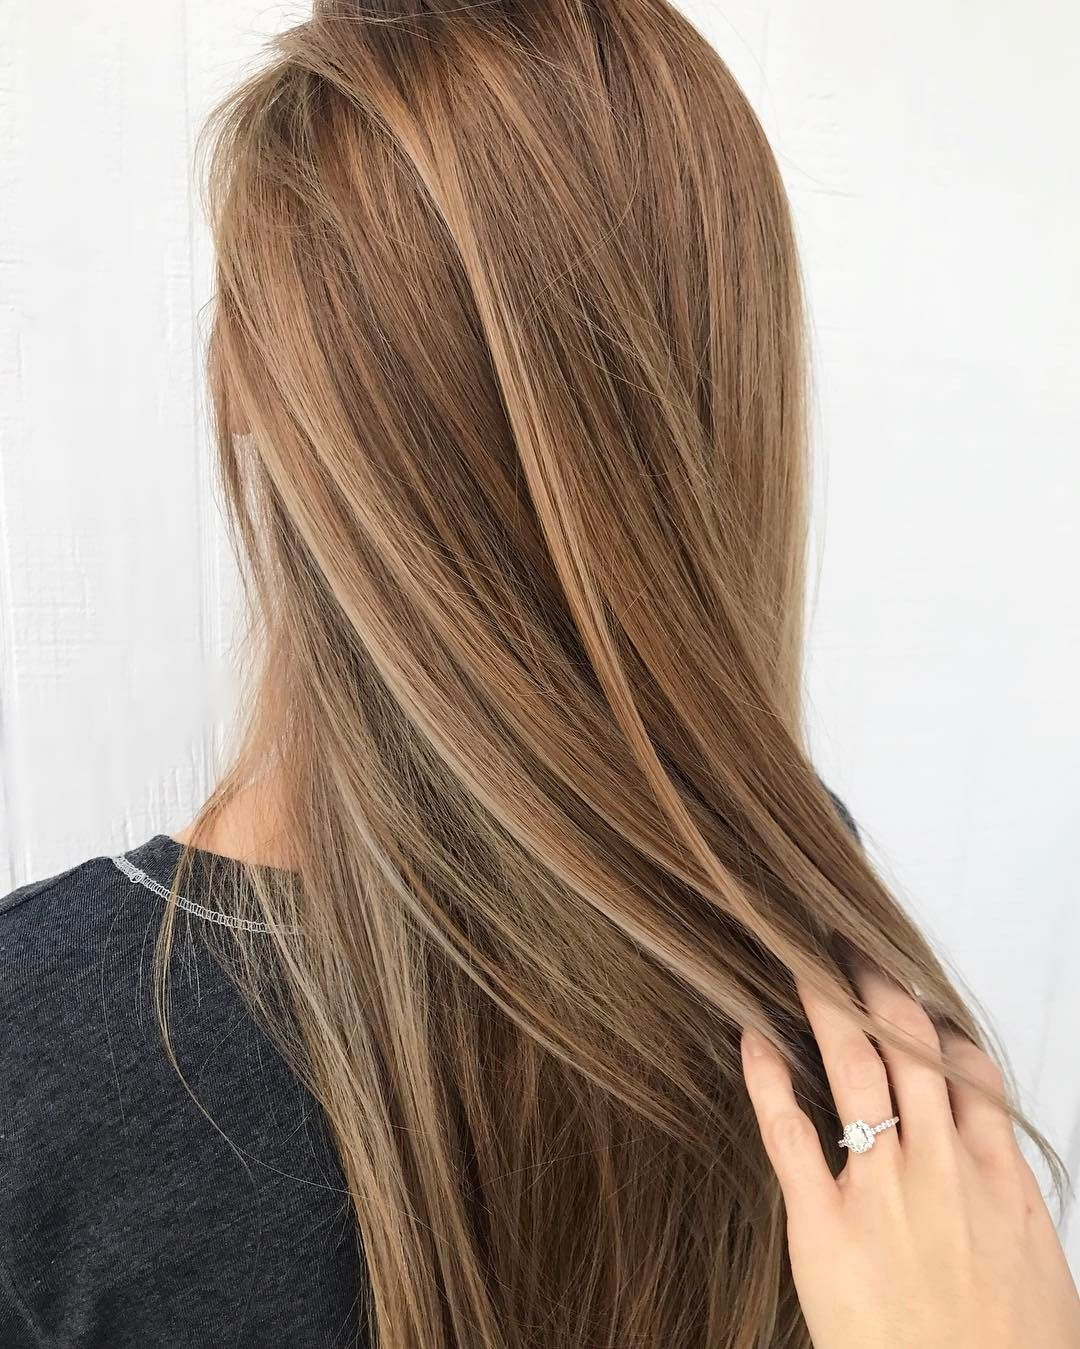 Dark Blonde Hair Possesses A Lot Of Depth And Definition That Is Hard To Replicate With Any Other Hair Col Blonde Brown Hair Color Hair Styles Light Brown Hair